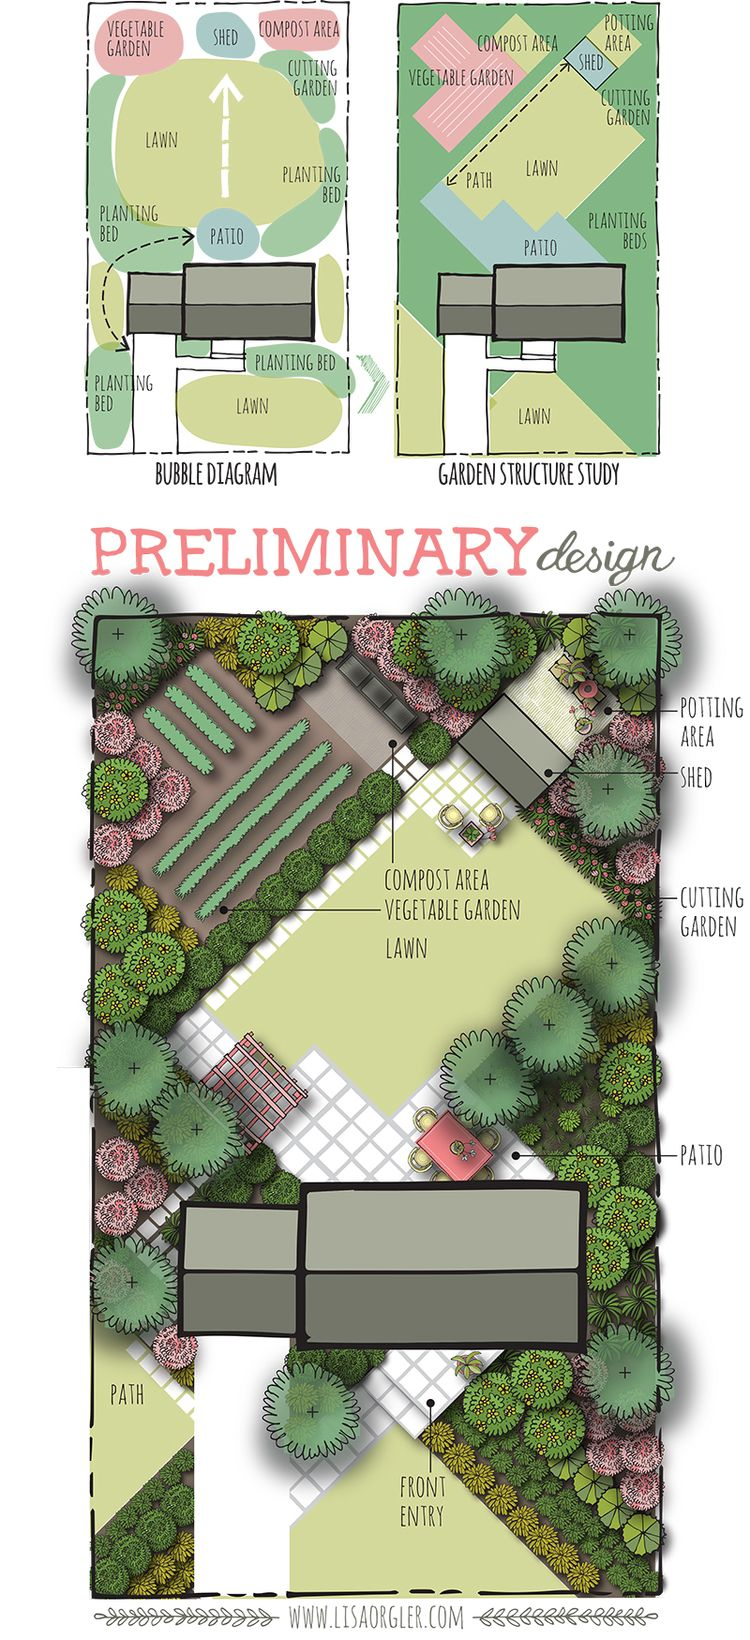 Cutting Garden Design Plans dec 10 rhythm in the garden | lisa, gardens and yards